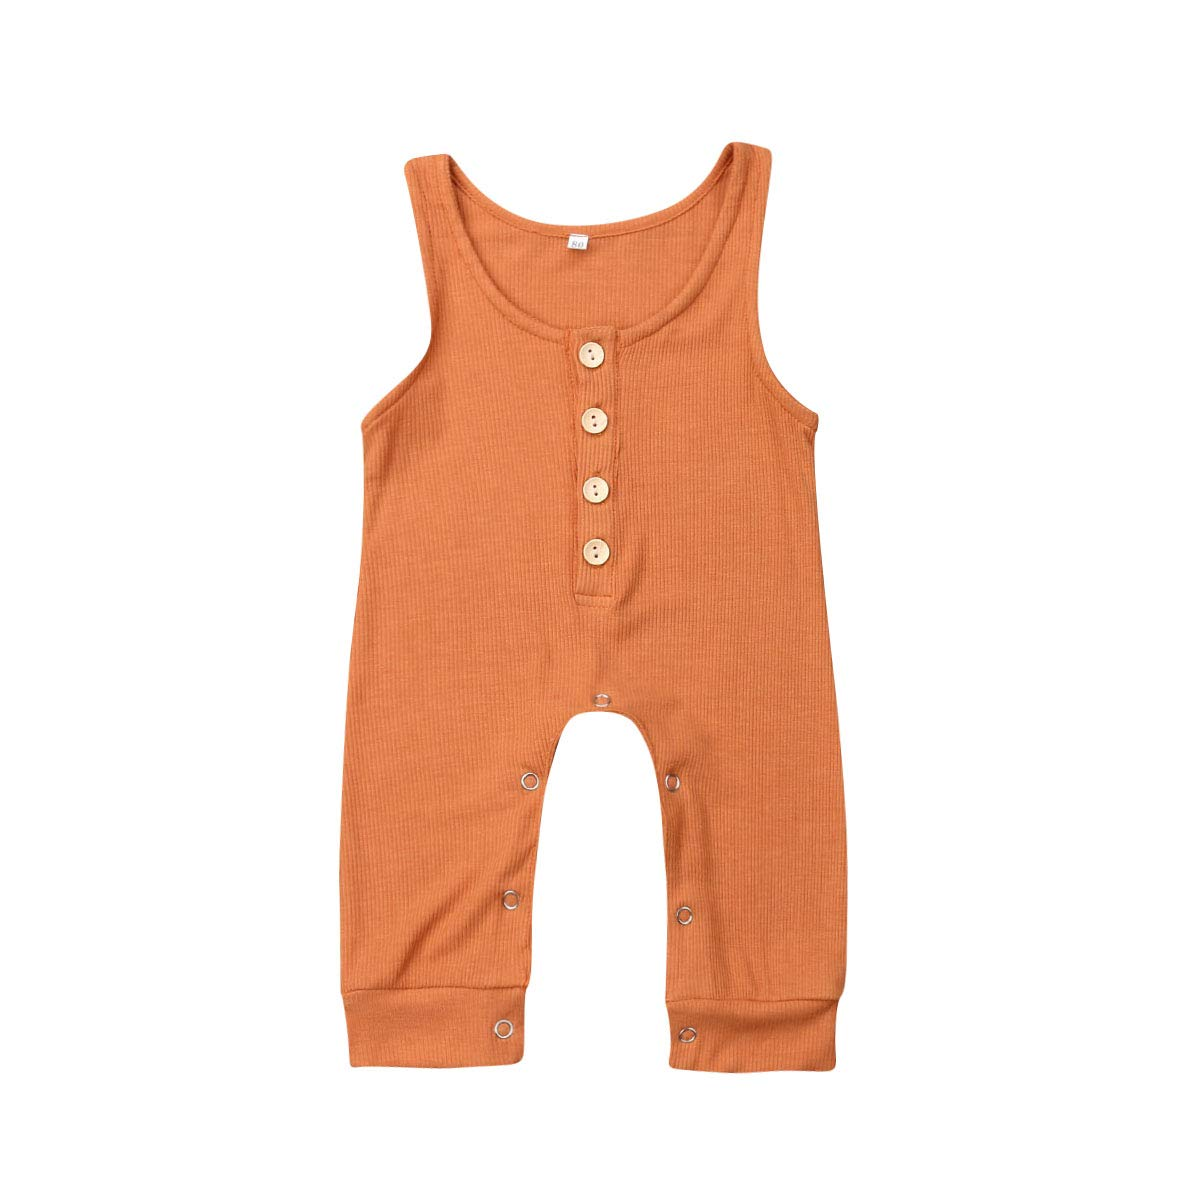 Lzxuan Newborn Baby Sleeveless Romper One-Piece Button Down Bodysuit Cotton Footed Clothes